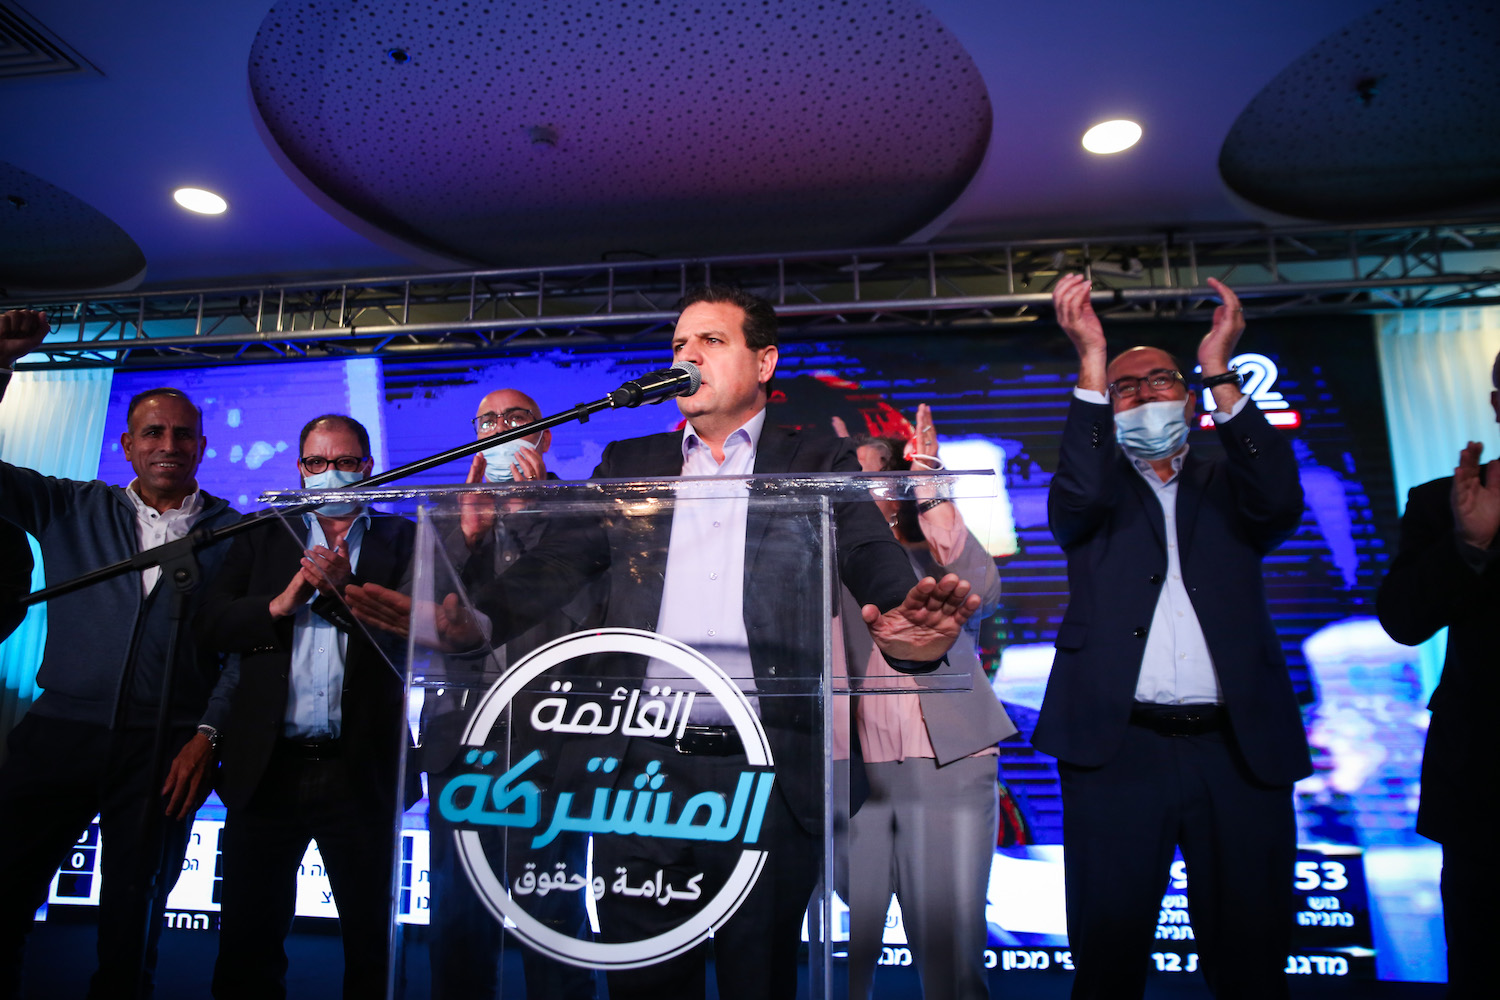 Joint List party chairman Ayman Udeh and members of the Joint List party seen at party headquarters, Shefa 'Amr, election night, March 23, 2021. (David Cohen/Flash90)